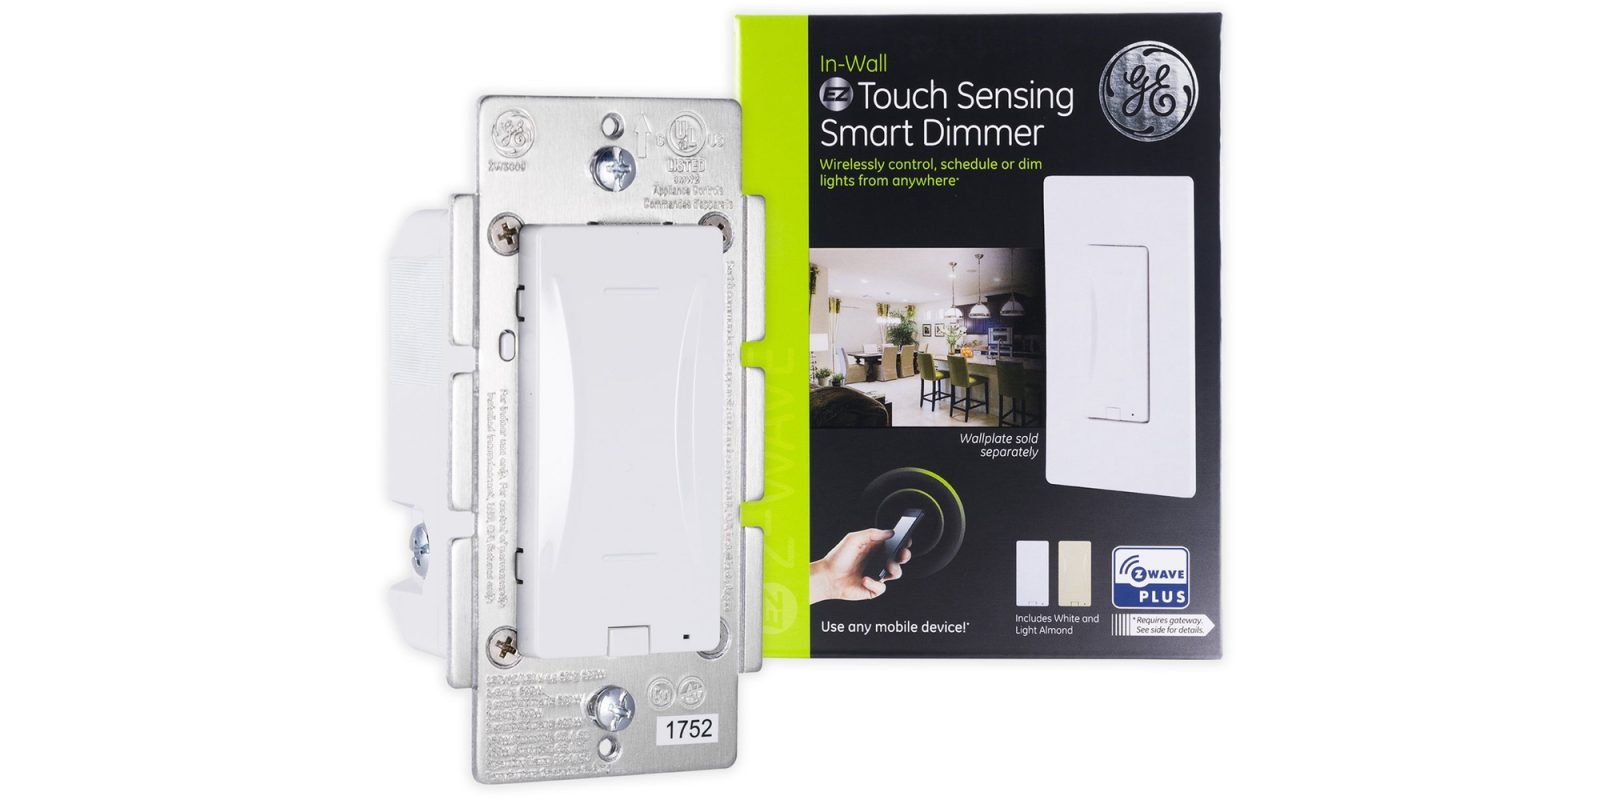 GE's Z-Wave Touch 3-Way Dimmer Switch hits new Amazon low at $46.50 (22% off)